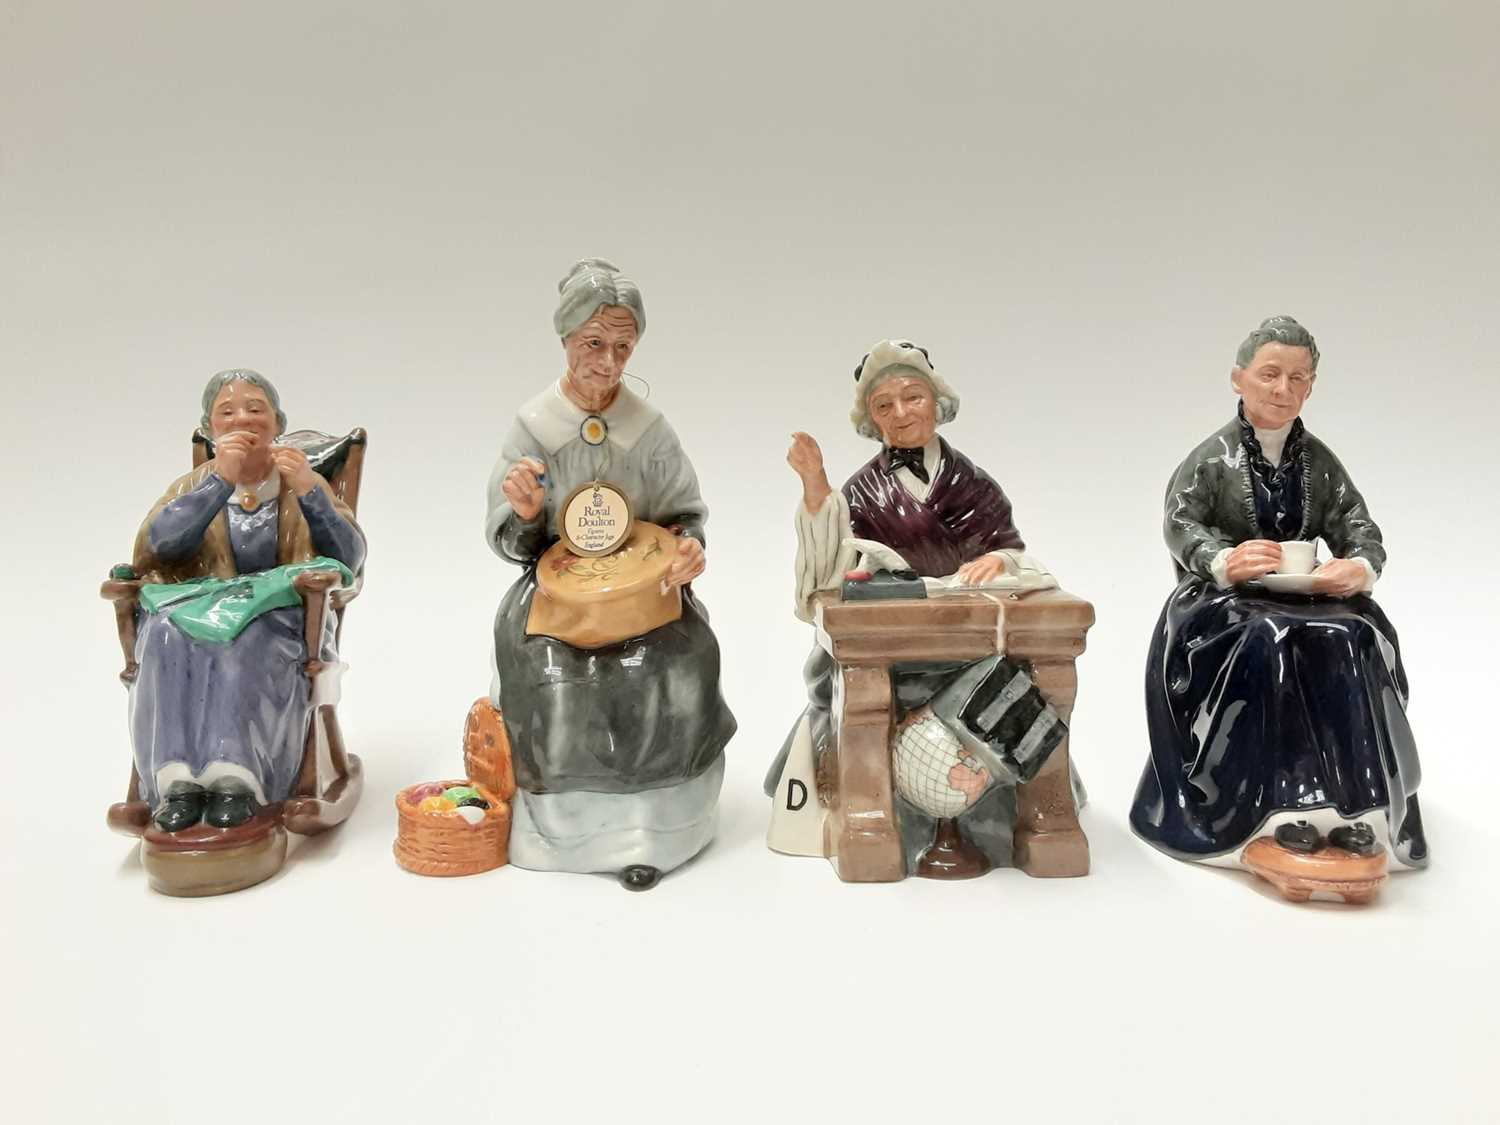 Lot 58 - Four Royal Doulton figures - The Cup Of Tea HN2322, Schoolmarm HN2223, A Stitch In Time HN2352 and Embroidering HN2855